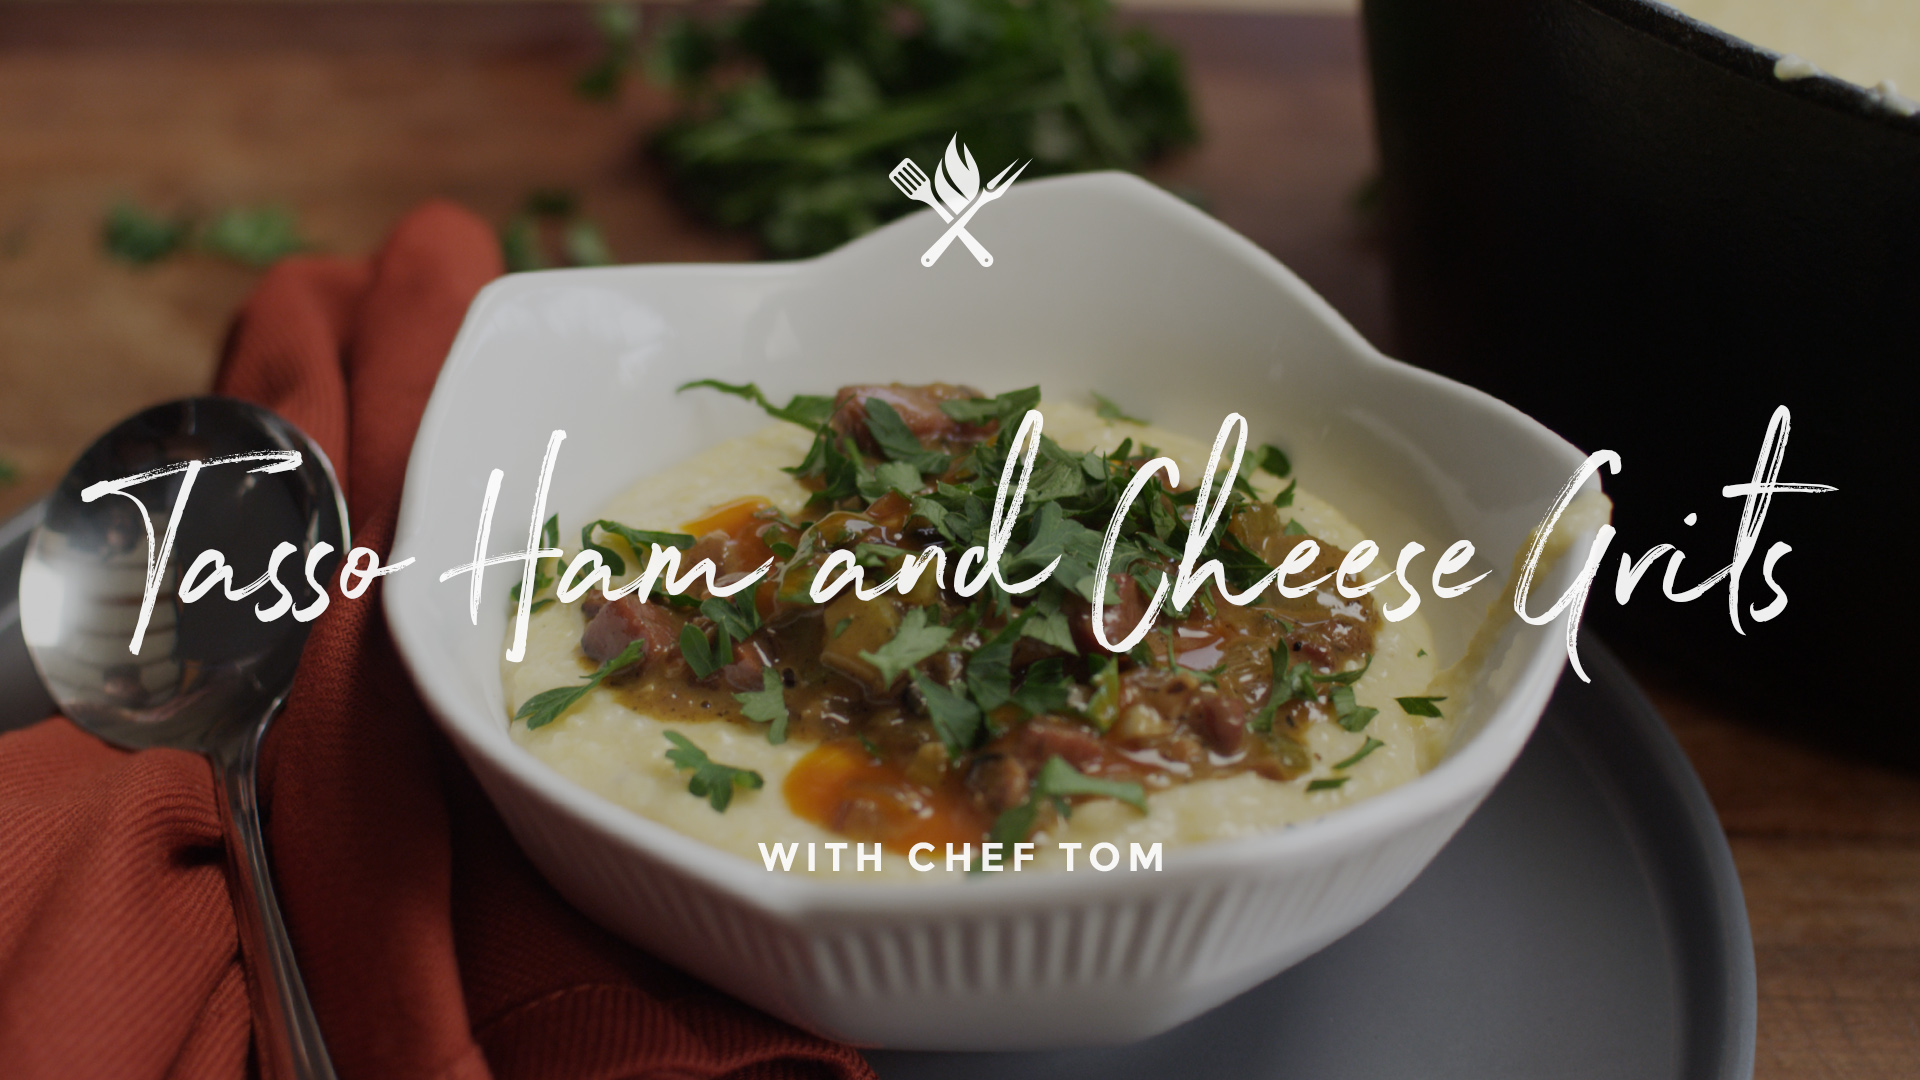 Tasso Ham & Cheese Grits Recipe